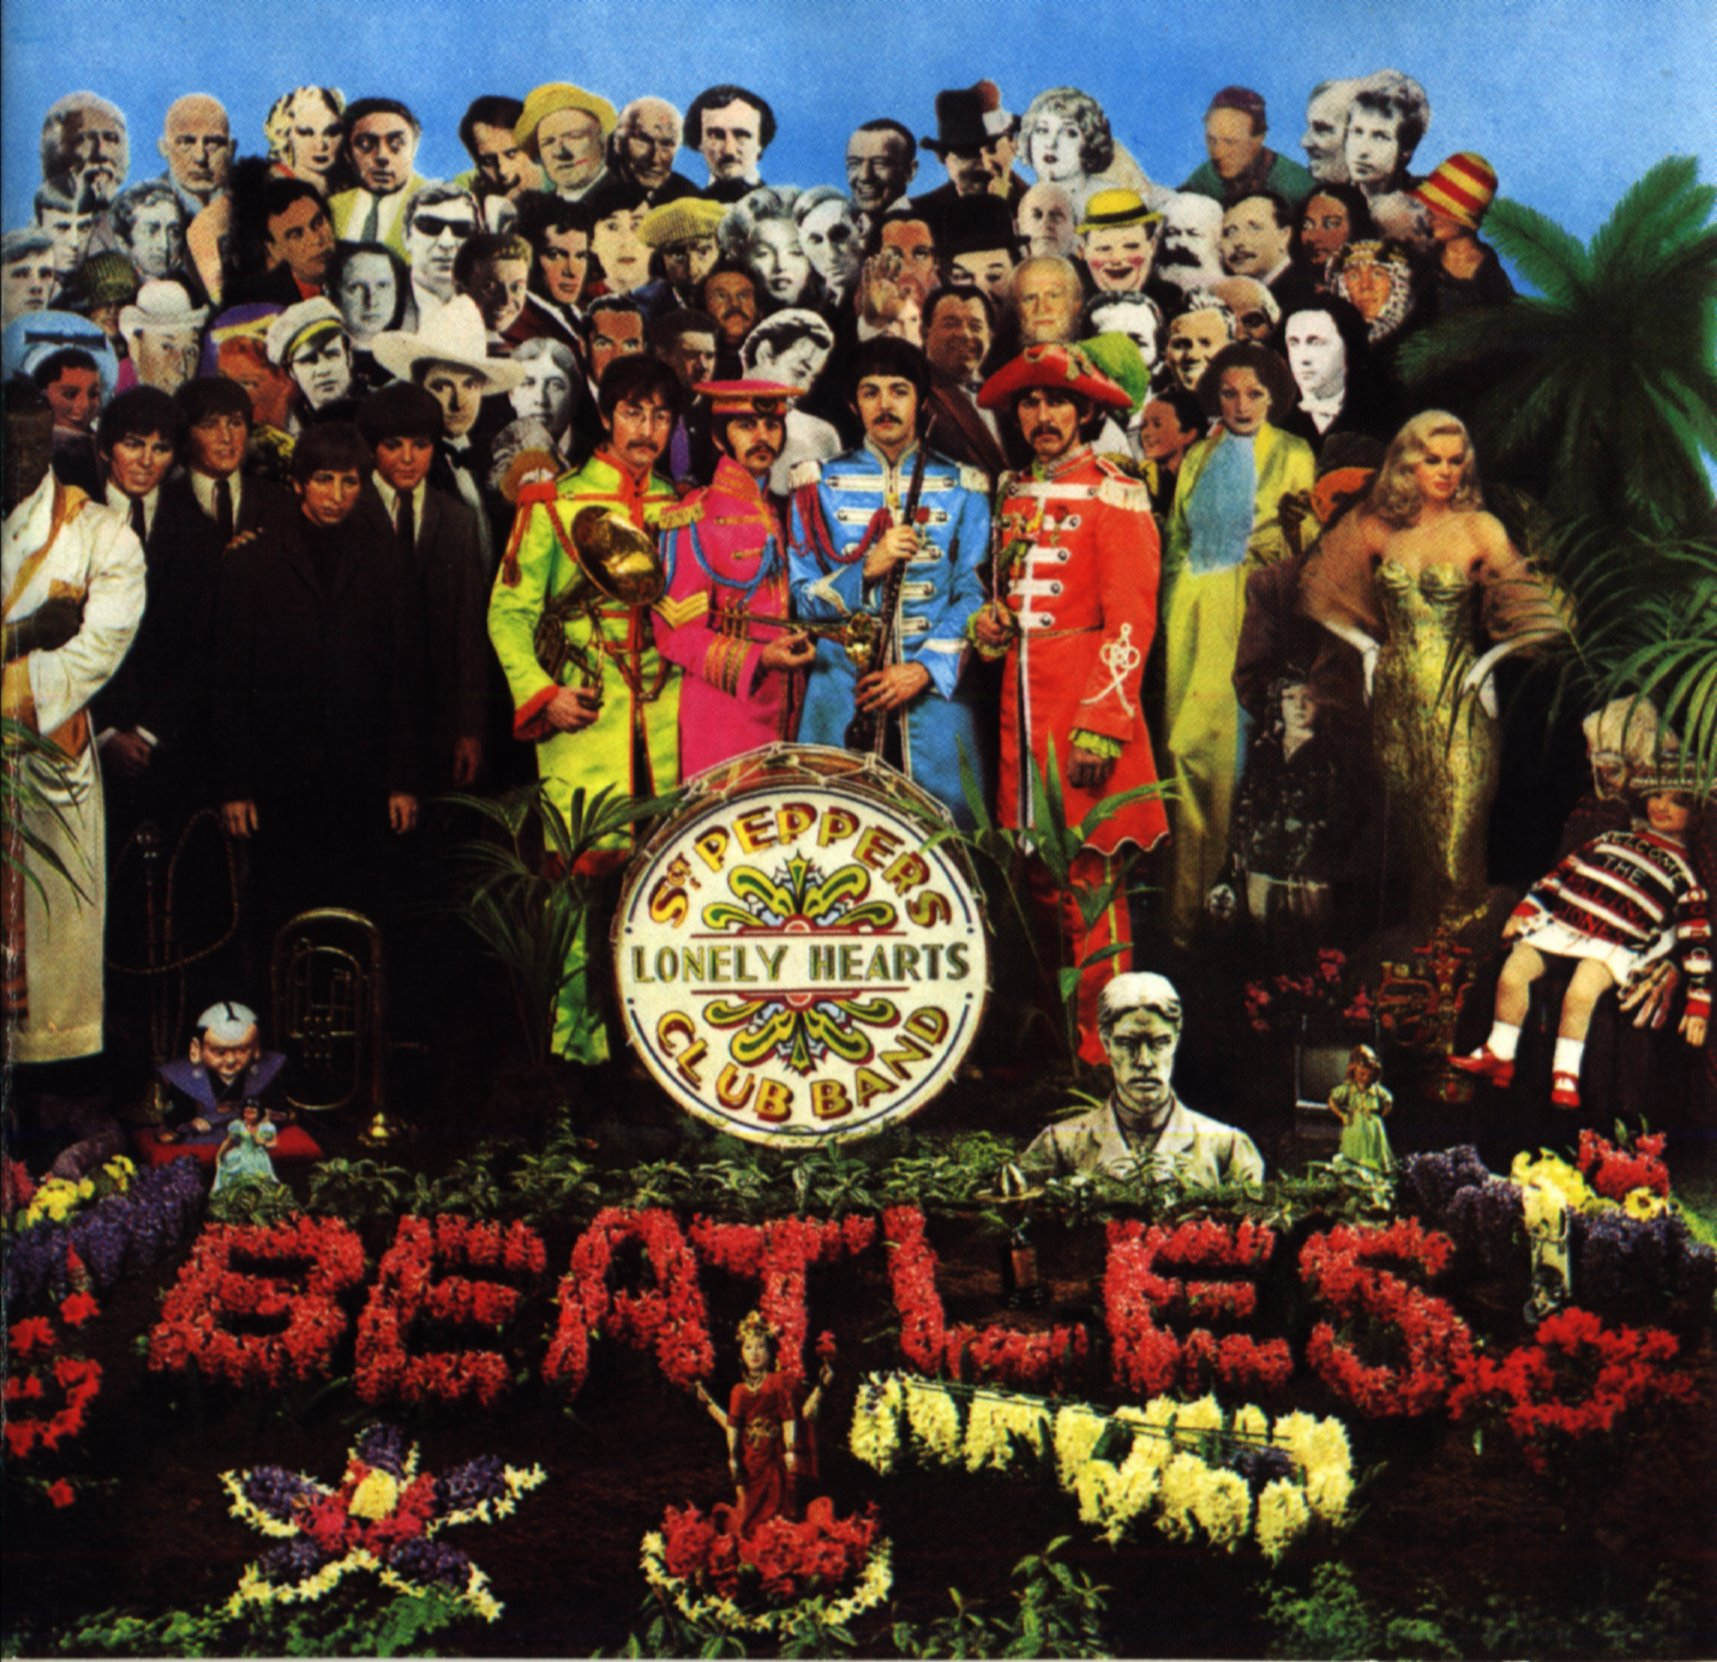 The Beatles - Sgt. Pepper's Lonely Hearts Club Band- 1967 Sgt-pepper